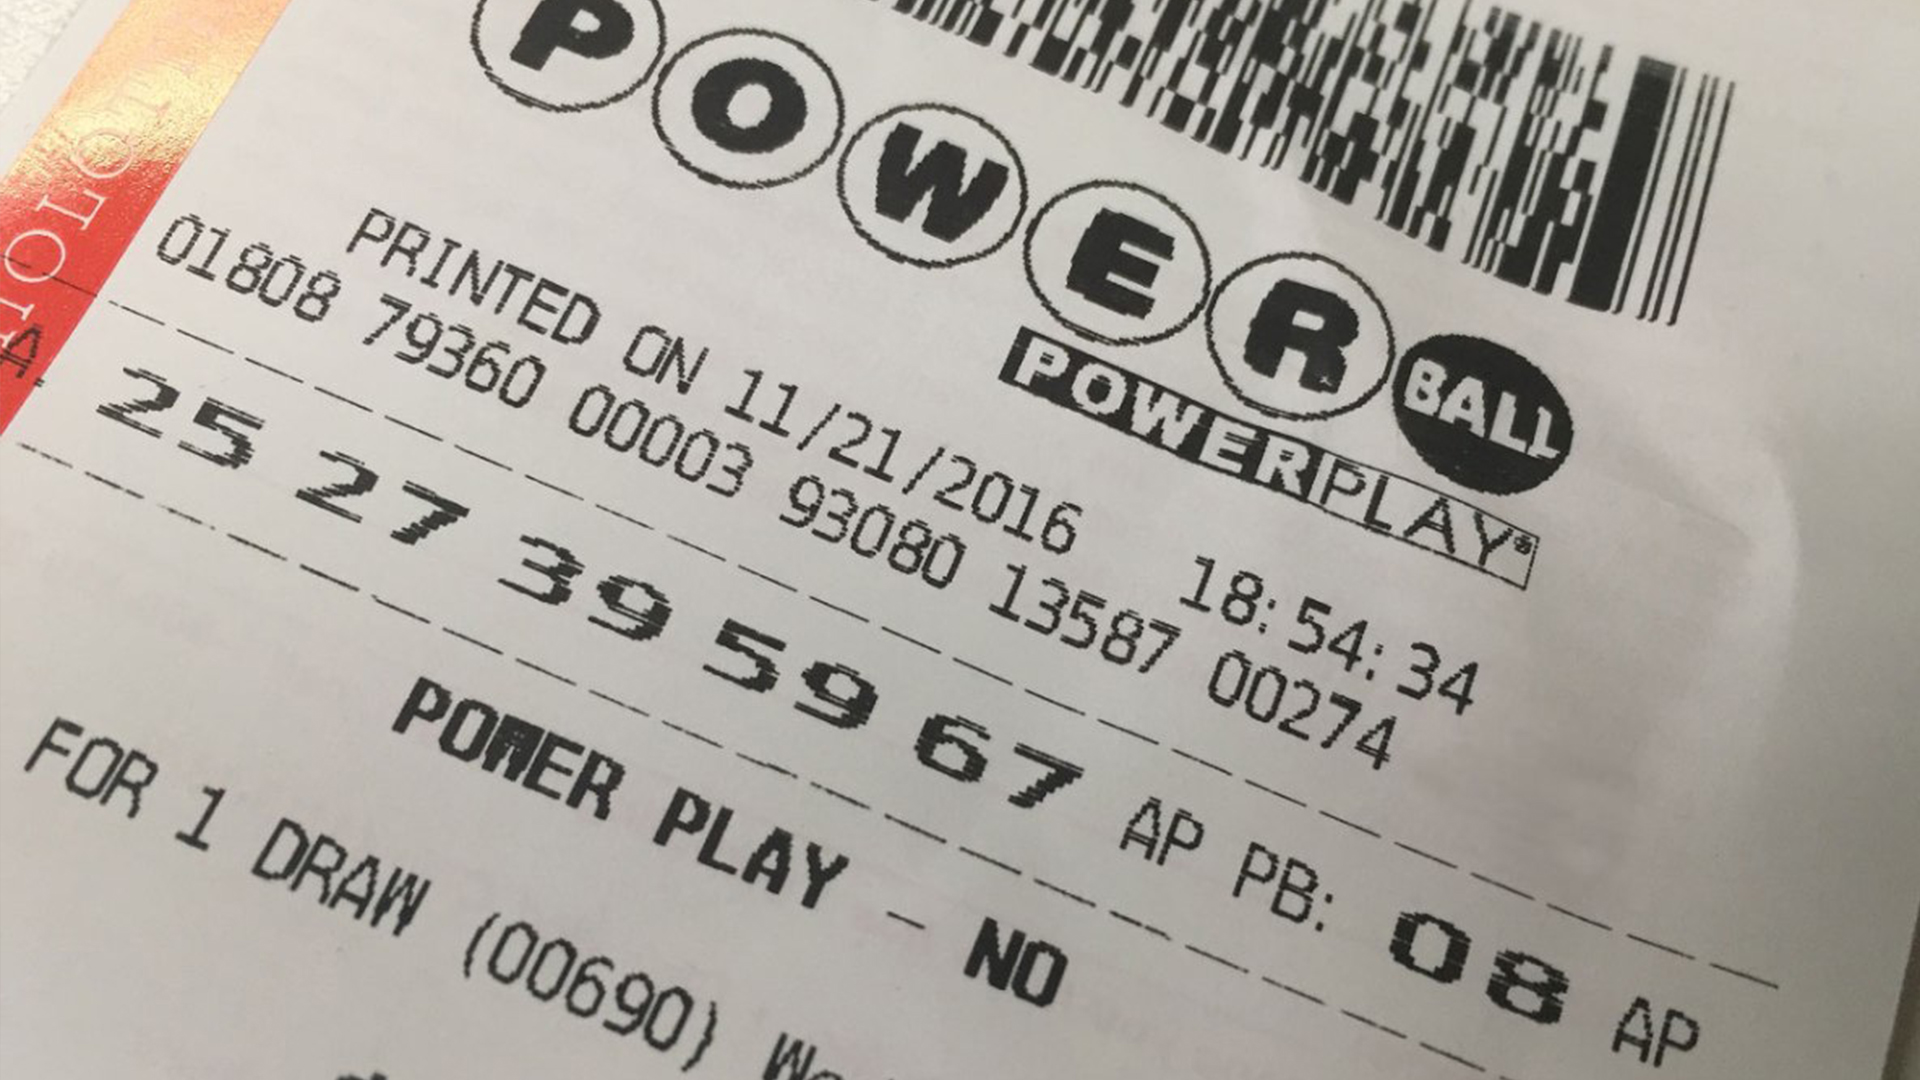 Feeling Lucky Here Are The Winning Numbers For The Powerball Jackpot Worth 410 Million Wfla